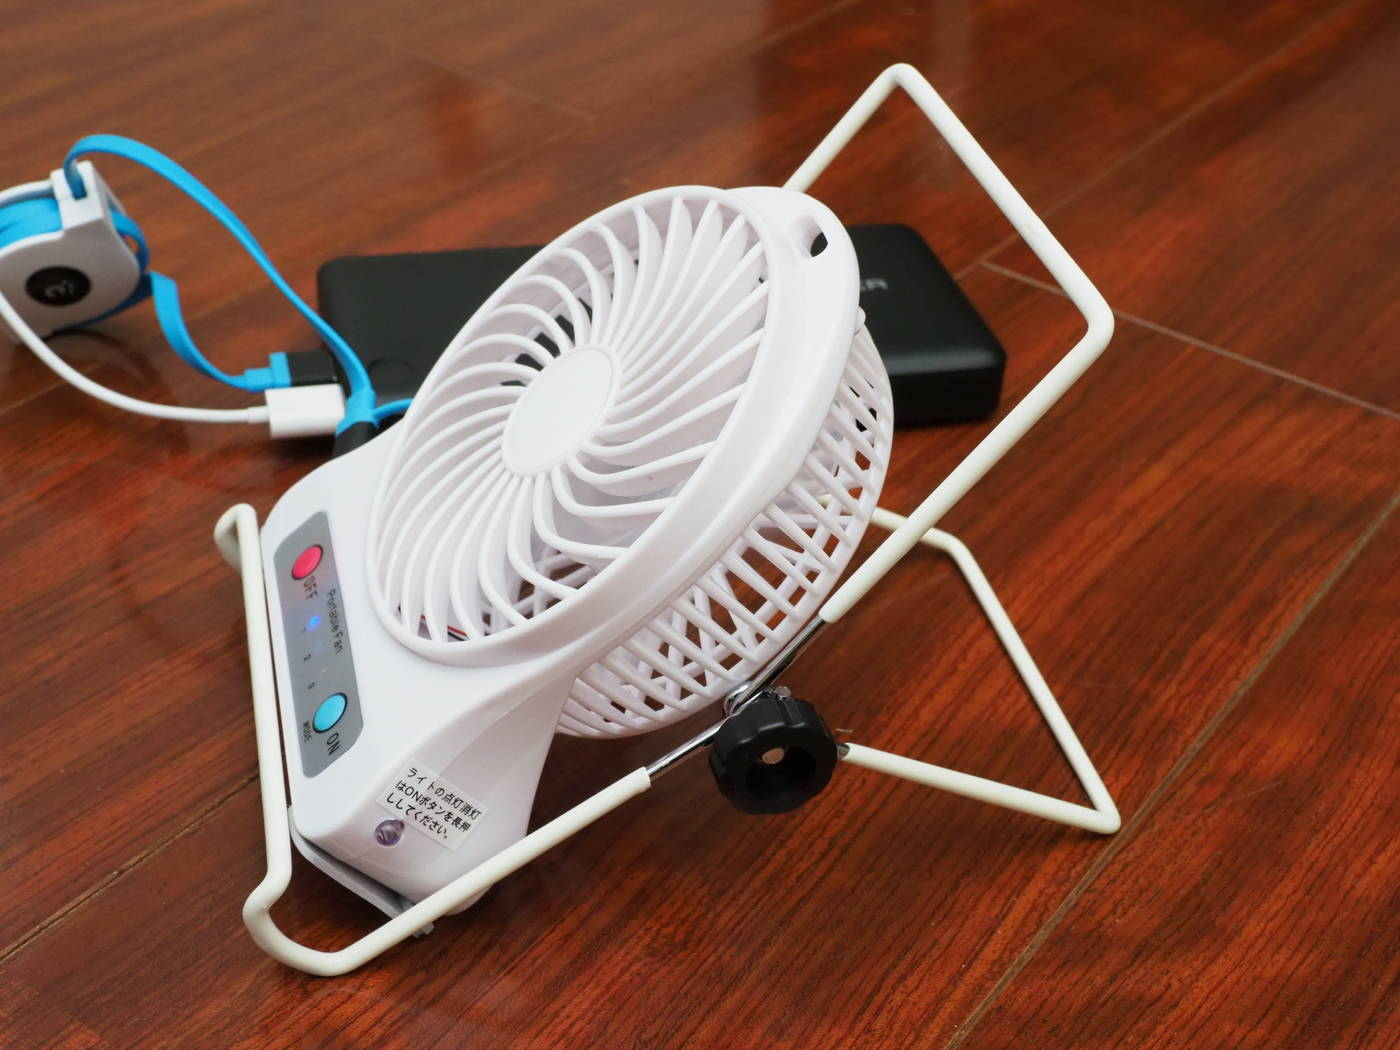 daiso-usb-fan0013